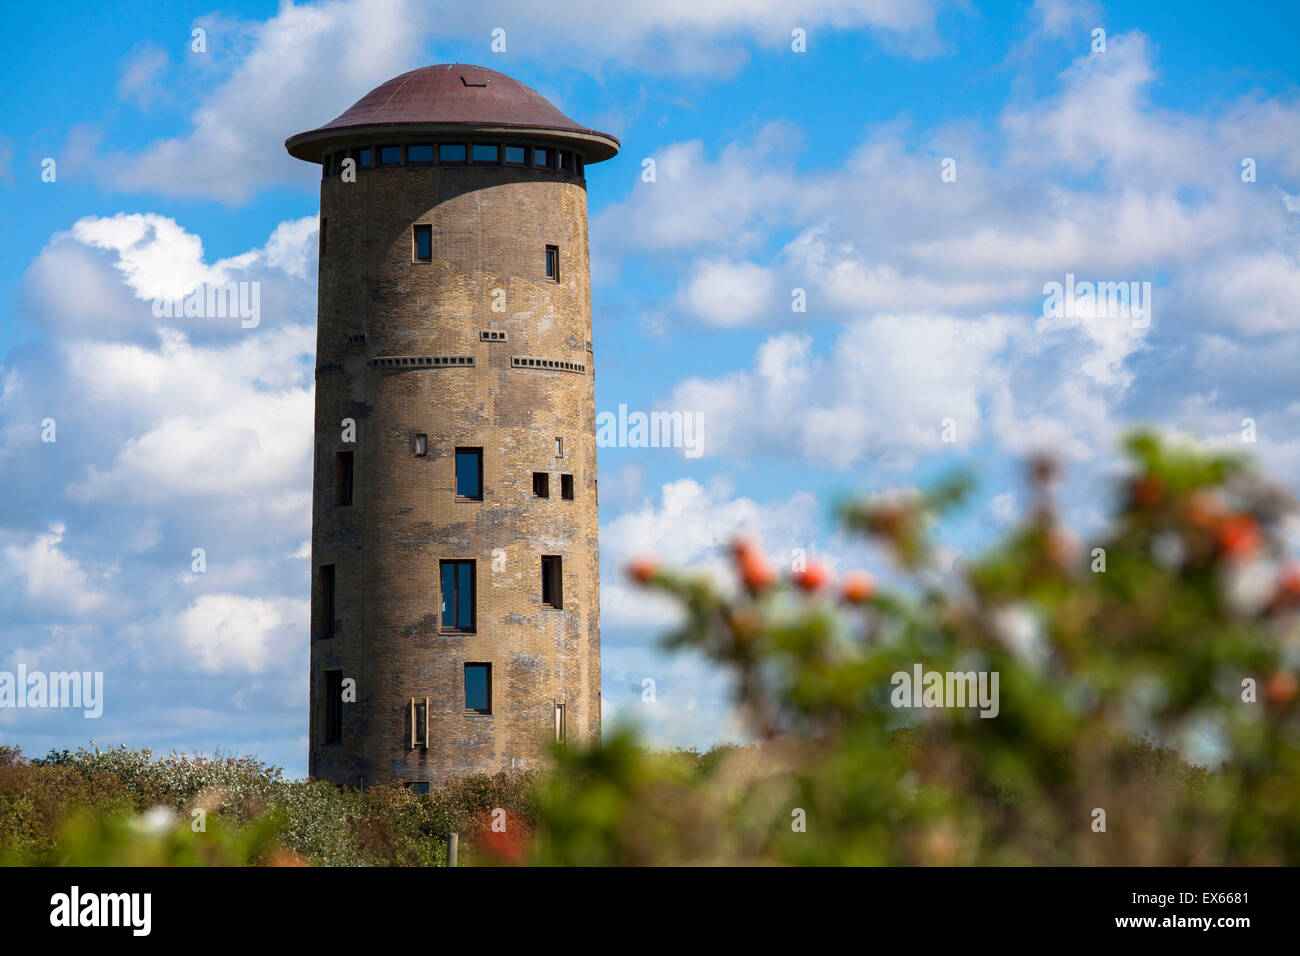 Europe, Netherlands, old water tower in the dunes in Domburg on the peninsula Walcheren. - Stock Image